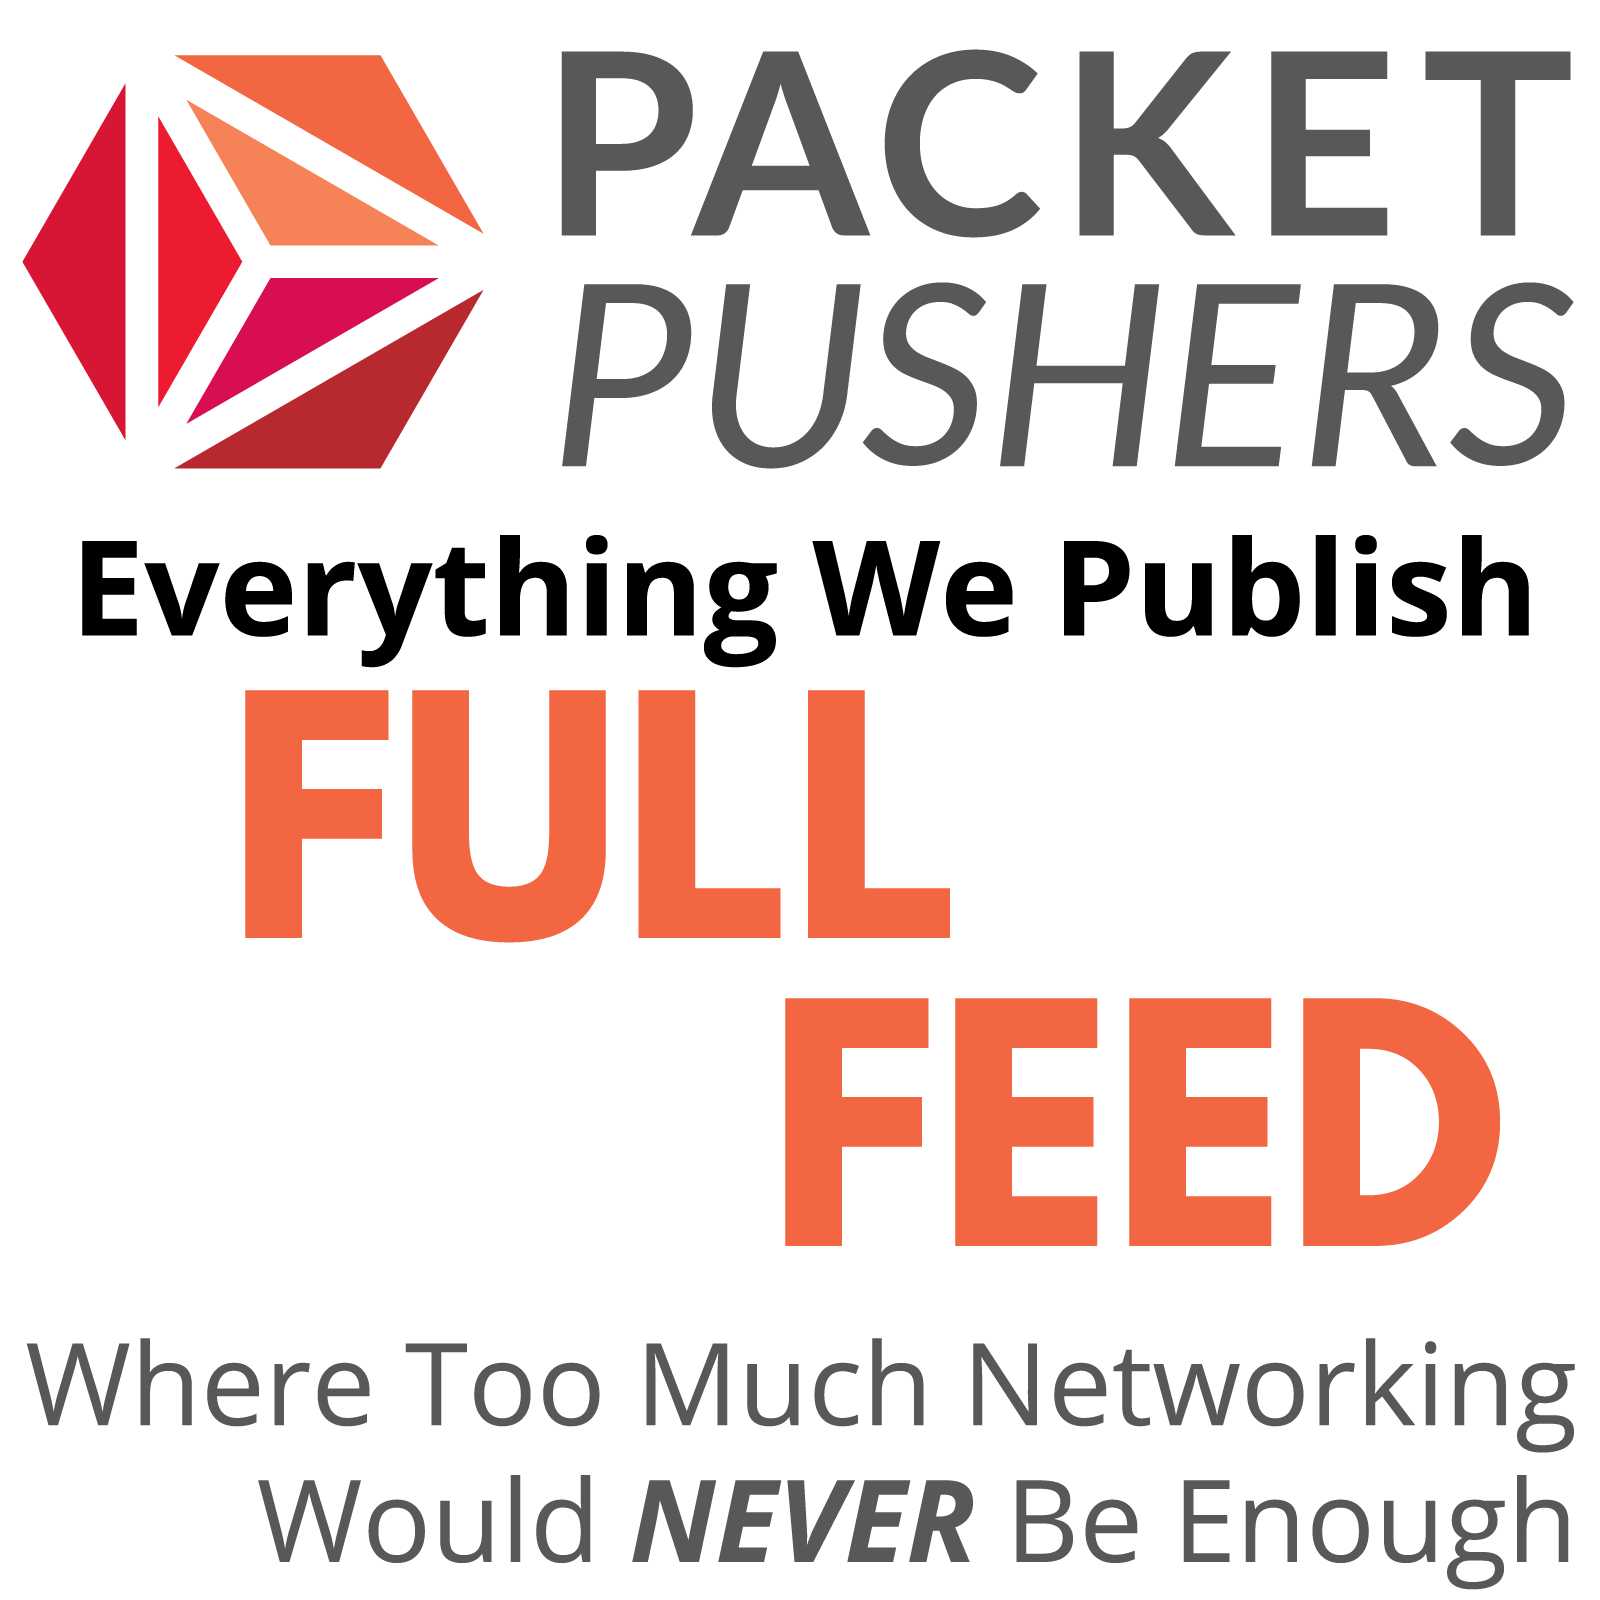 Packet Pushers